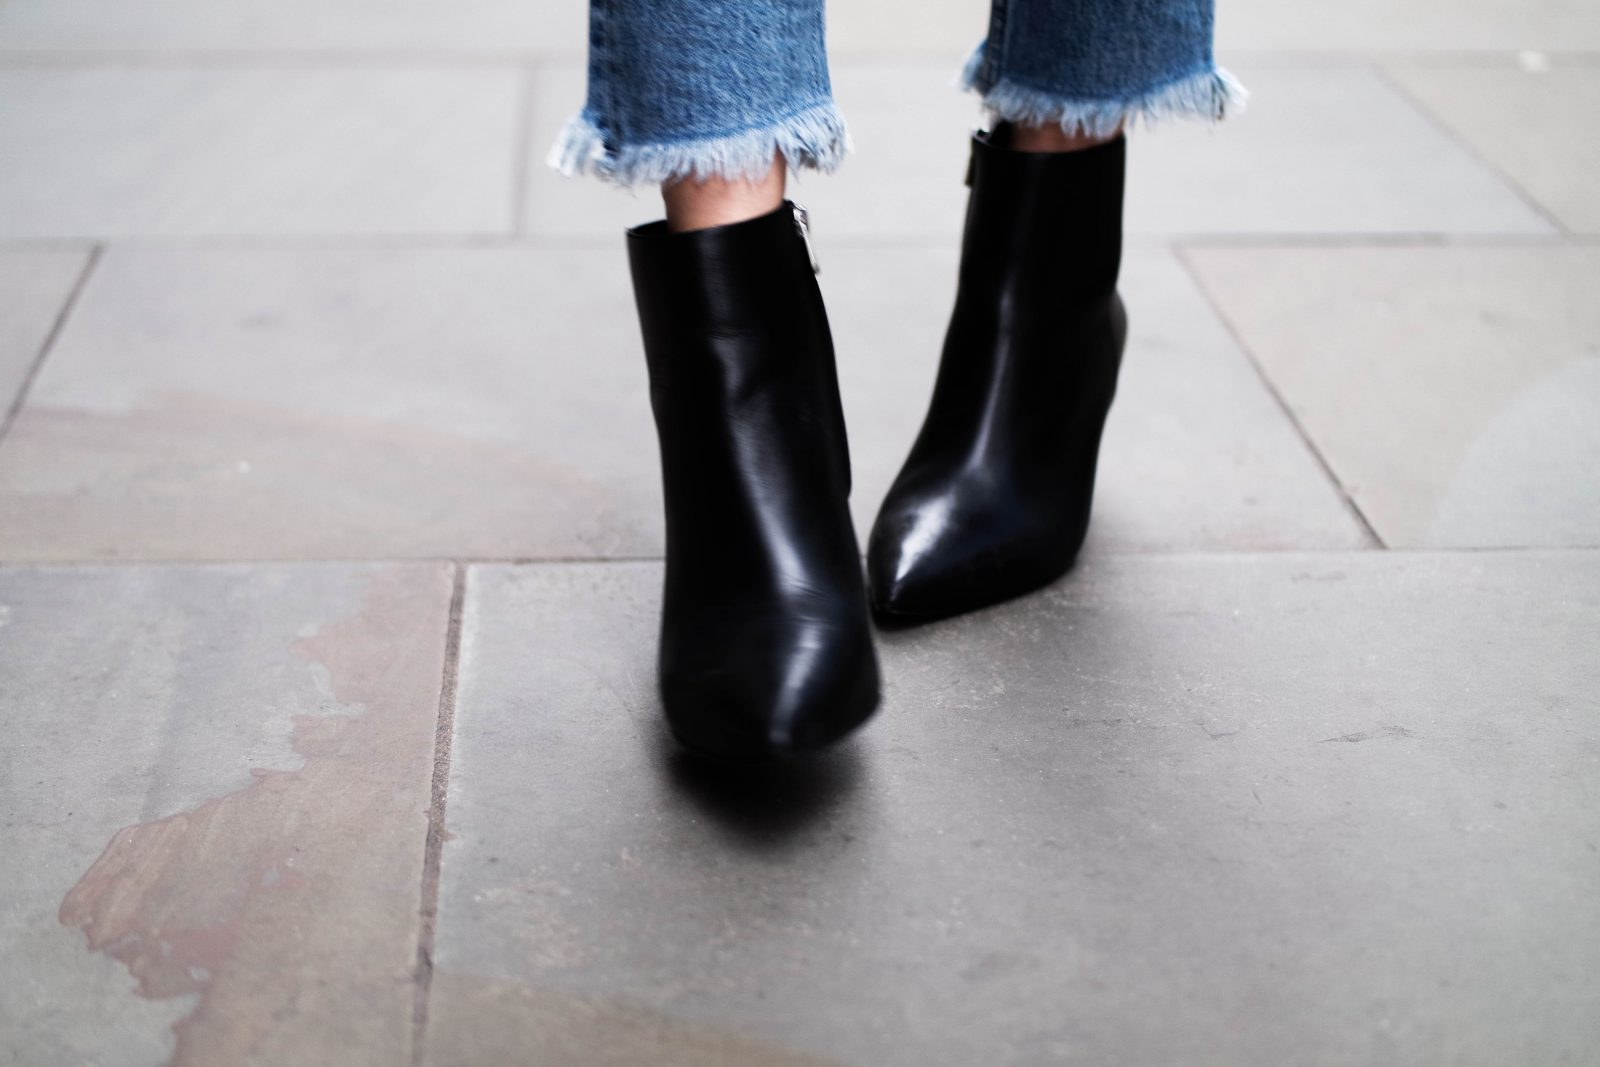 LFW Day 4 Comfy & Casual - Blogger Style